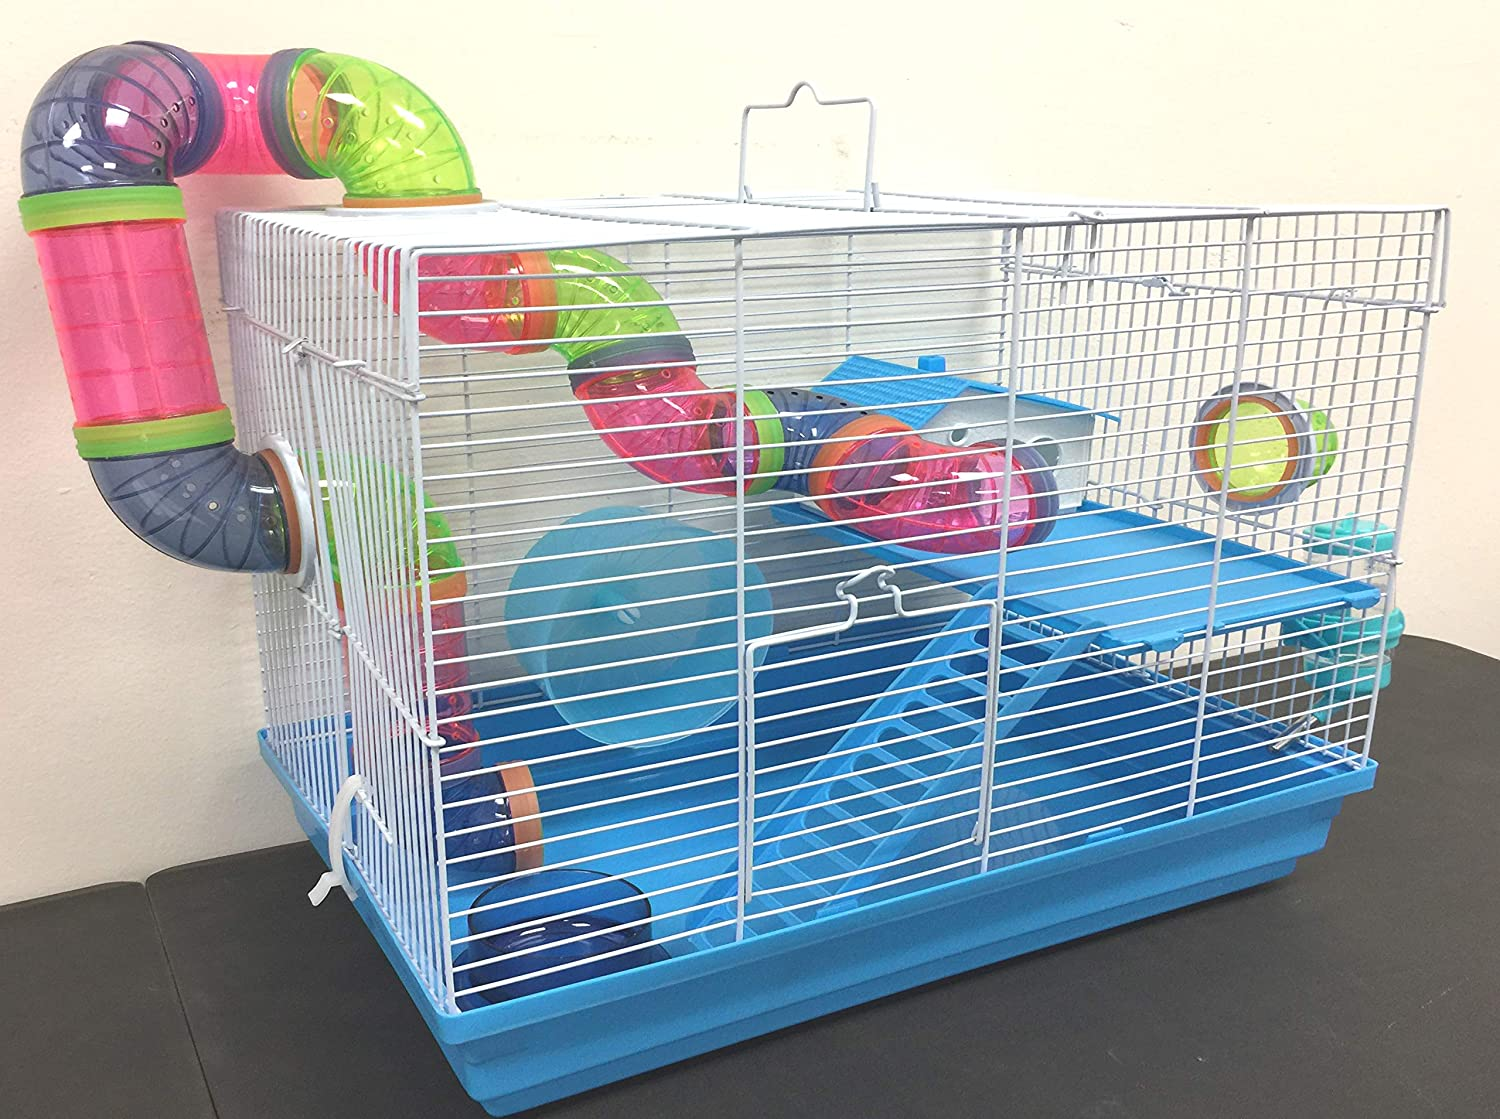 Top 10 hamster cages from amazon - Small pets cages